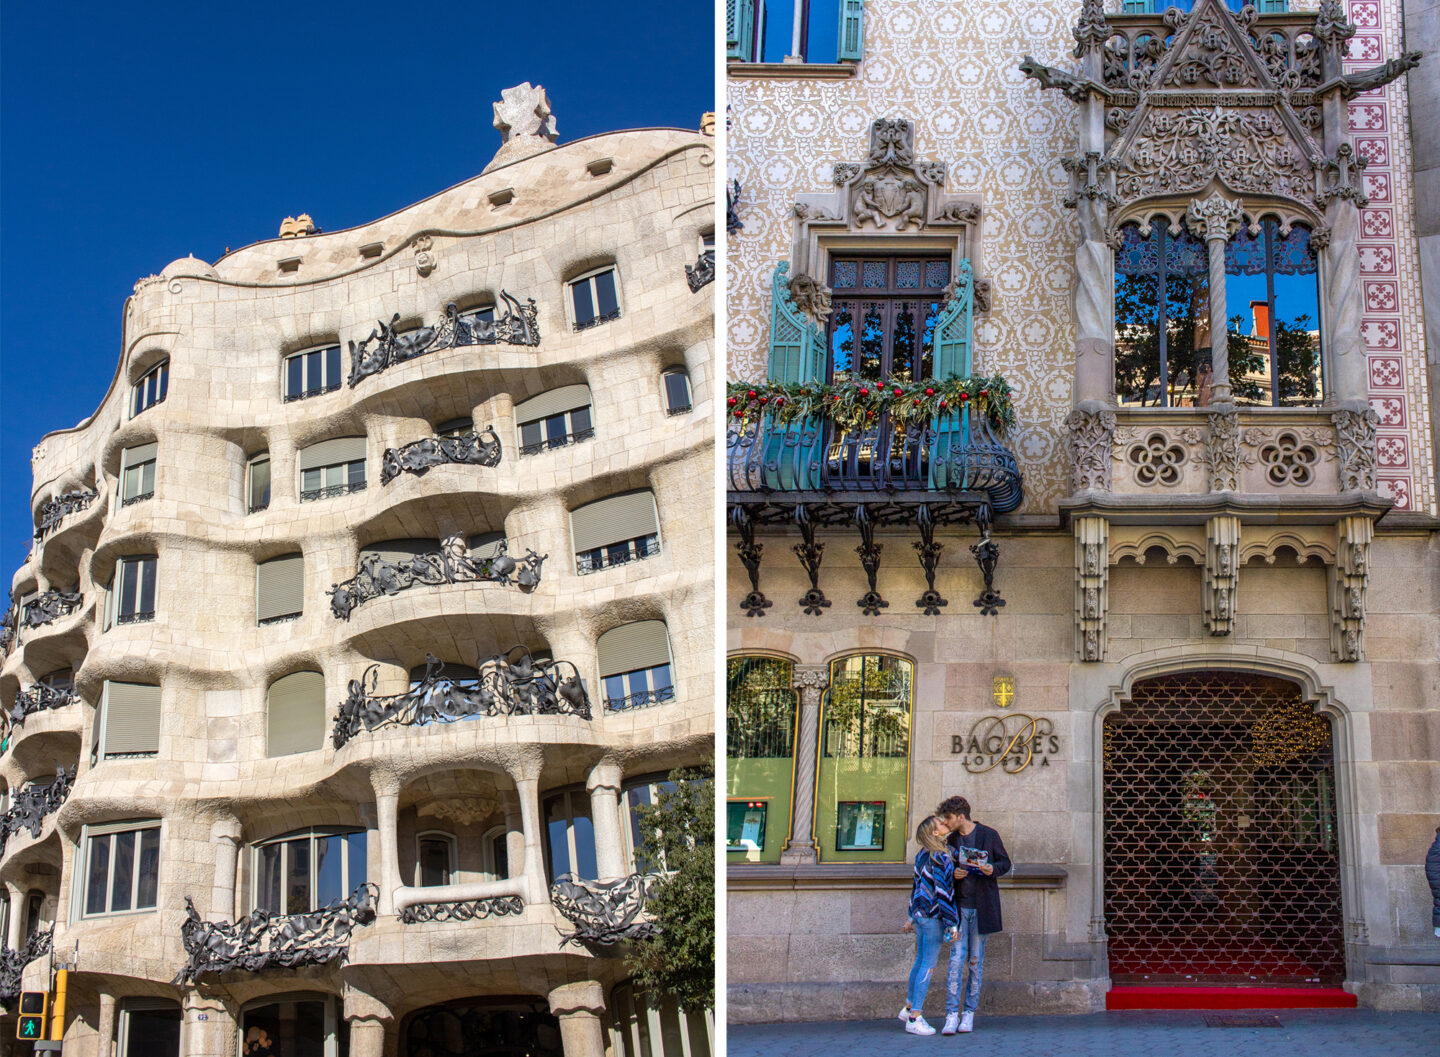 Casa Mila and couple in front of building in Barcelona.